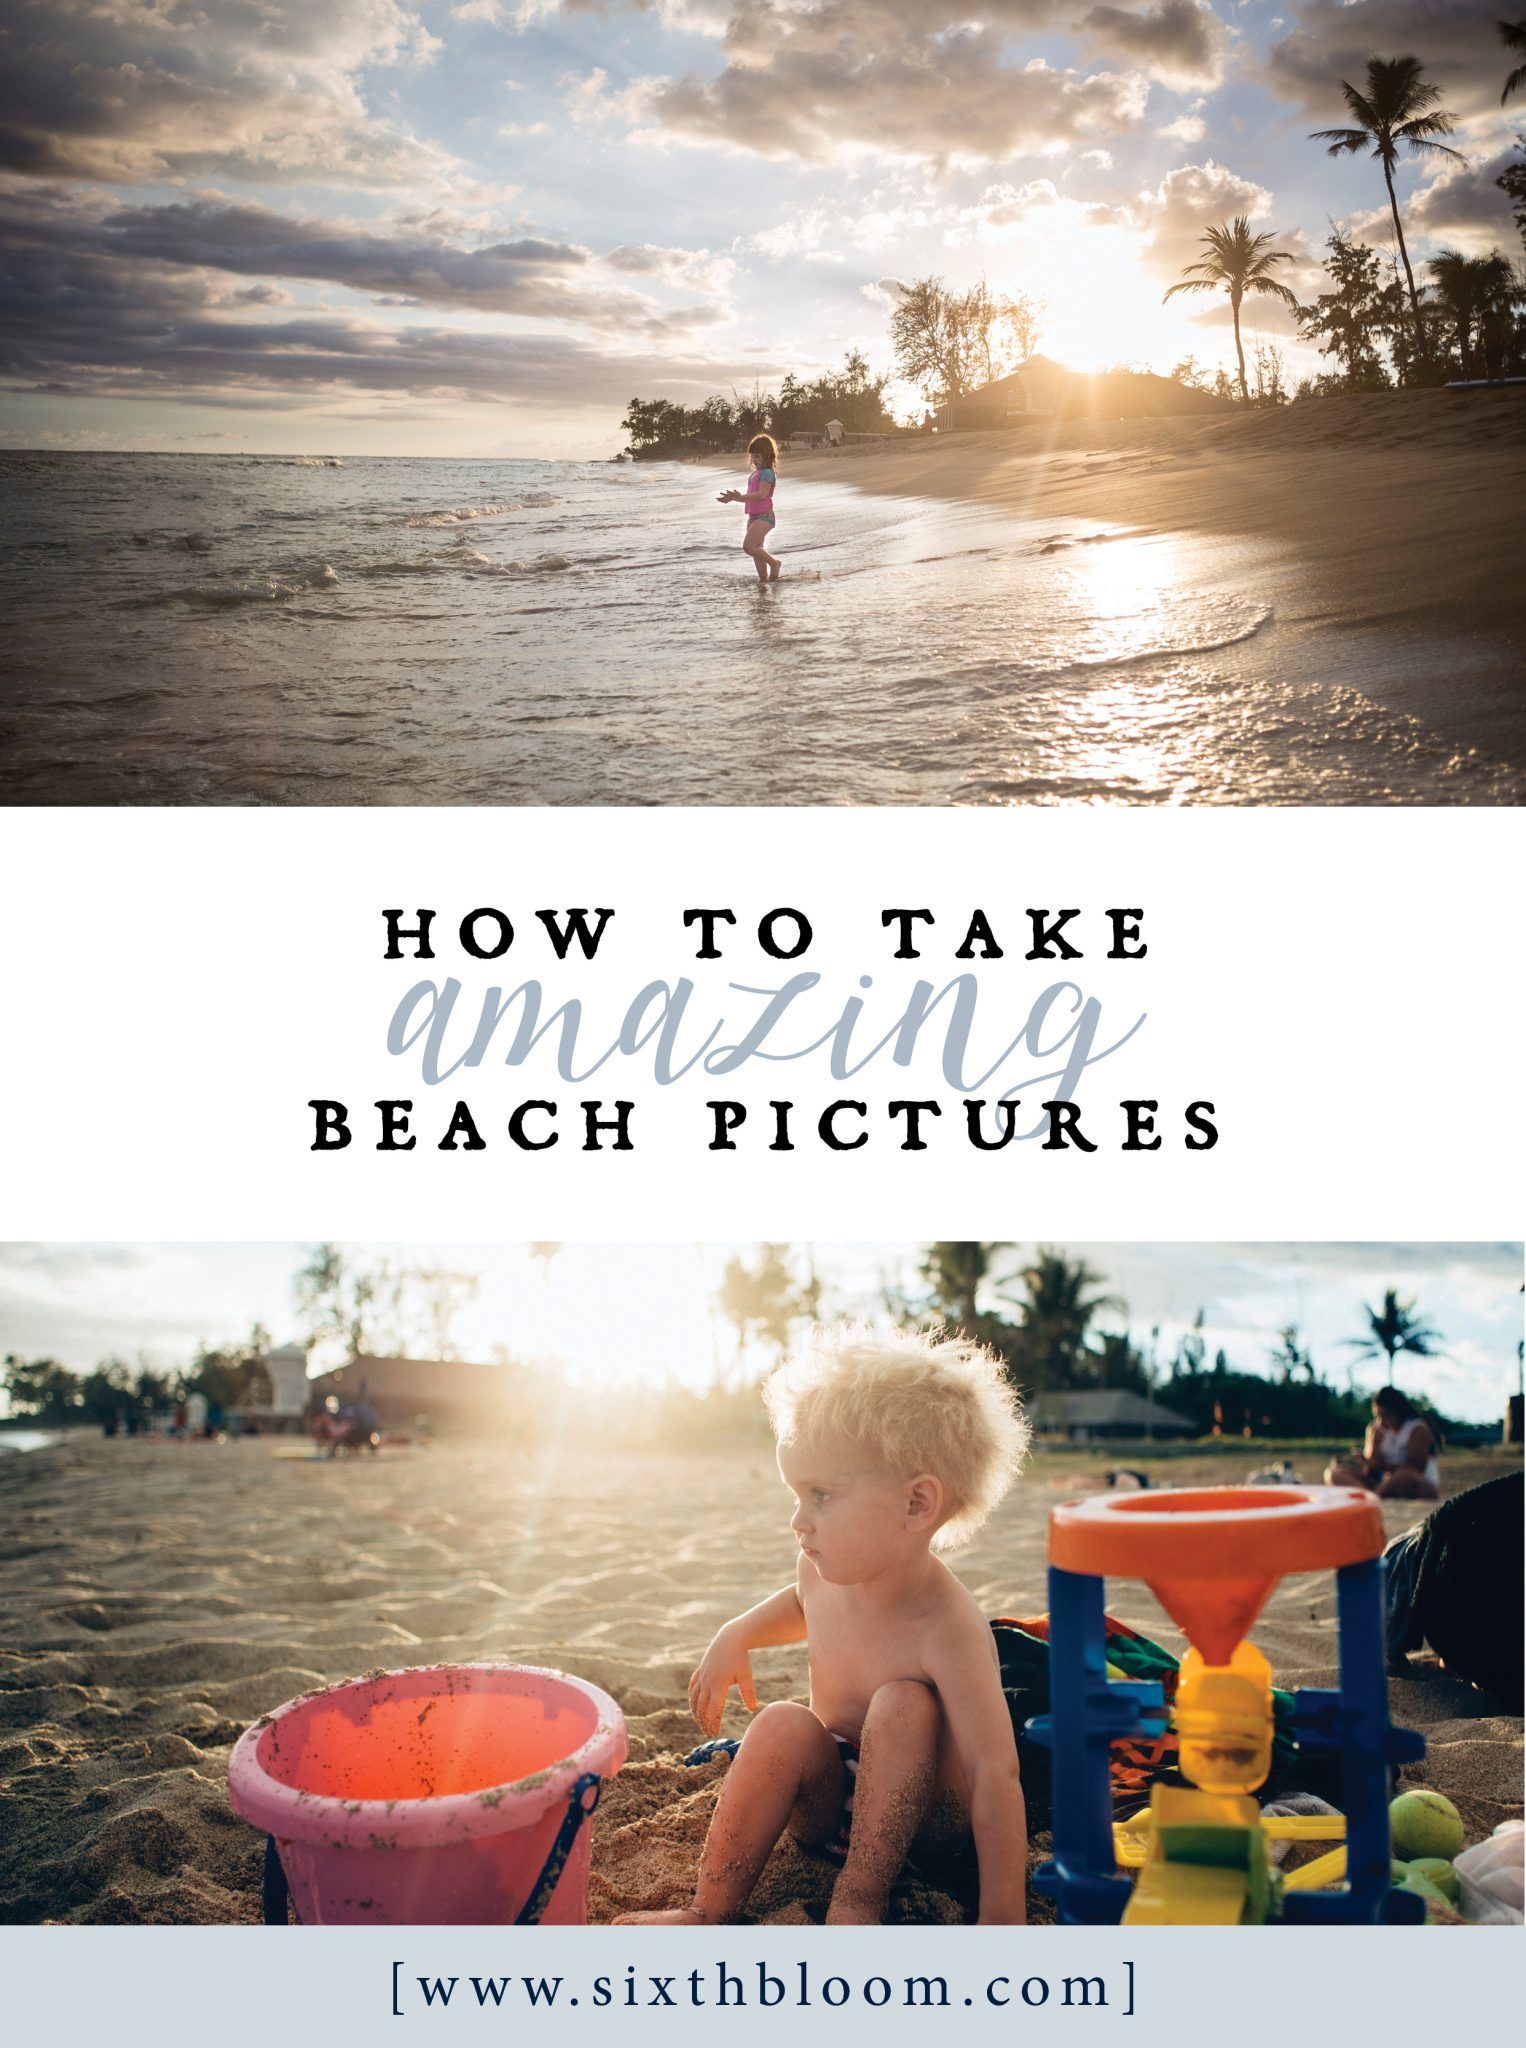 How to Take Amazing Beach Pictures